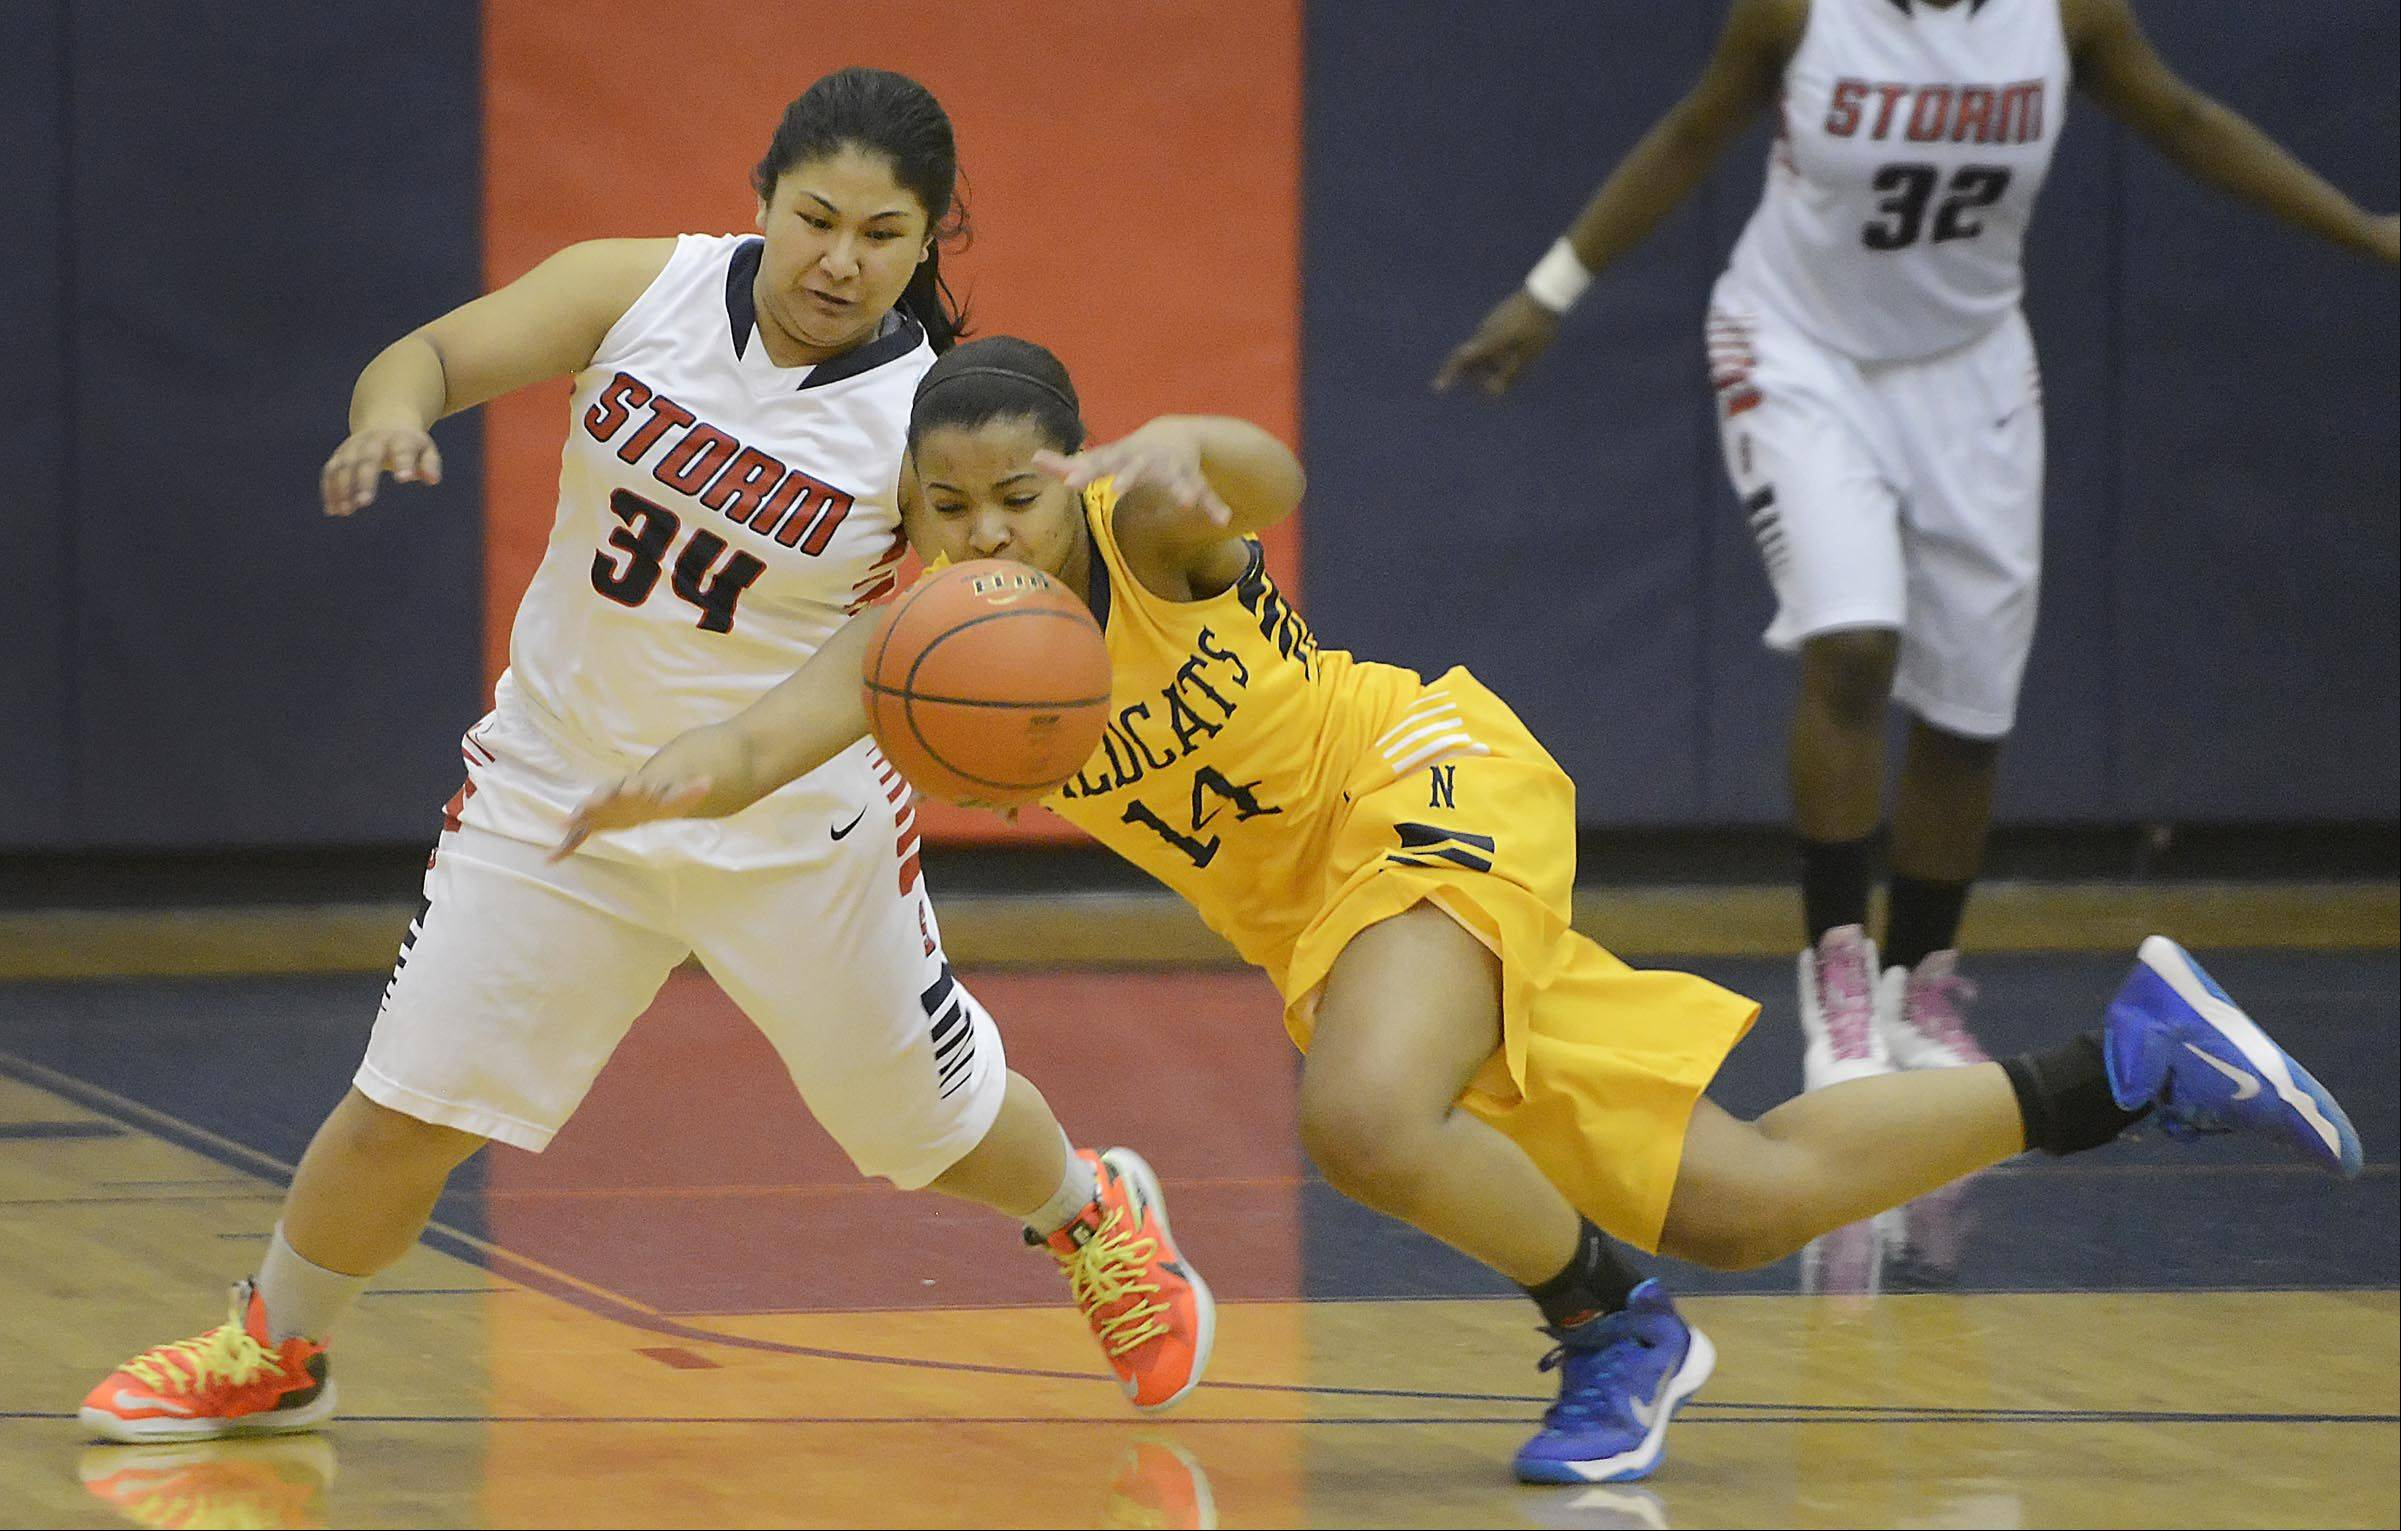 Neuqua Valley�s Najee Smith falls as South Elgin�s Nadia Yang defends.